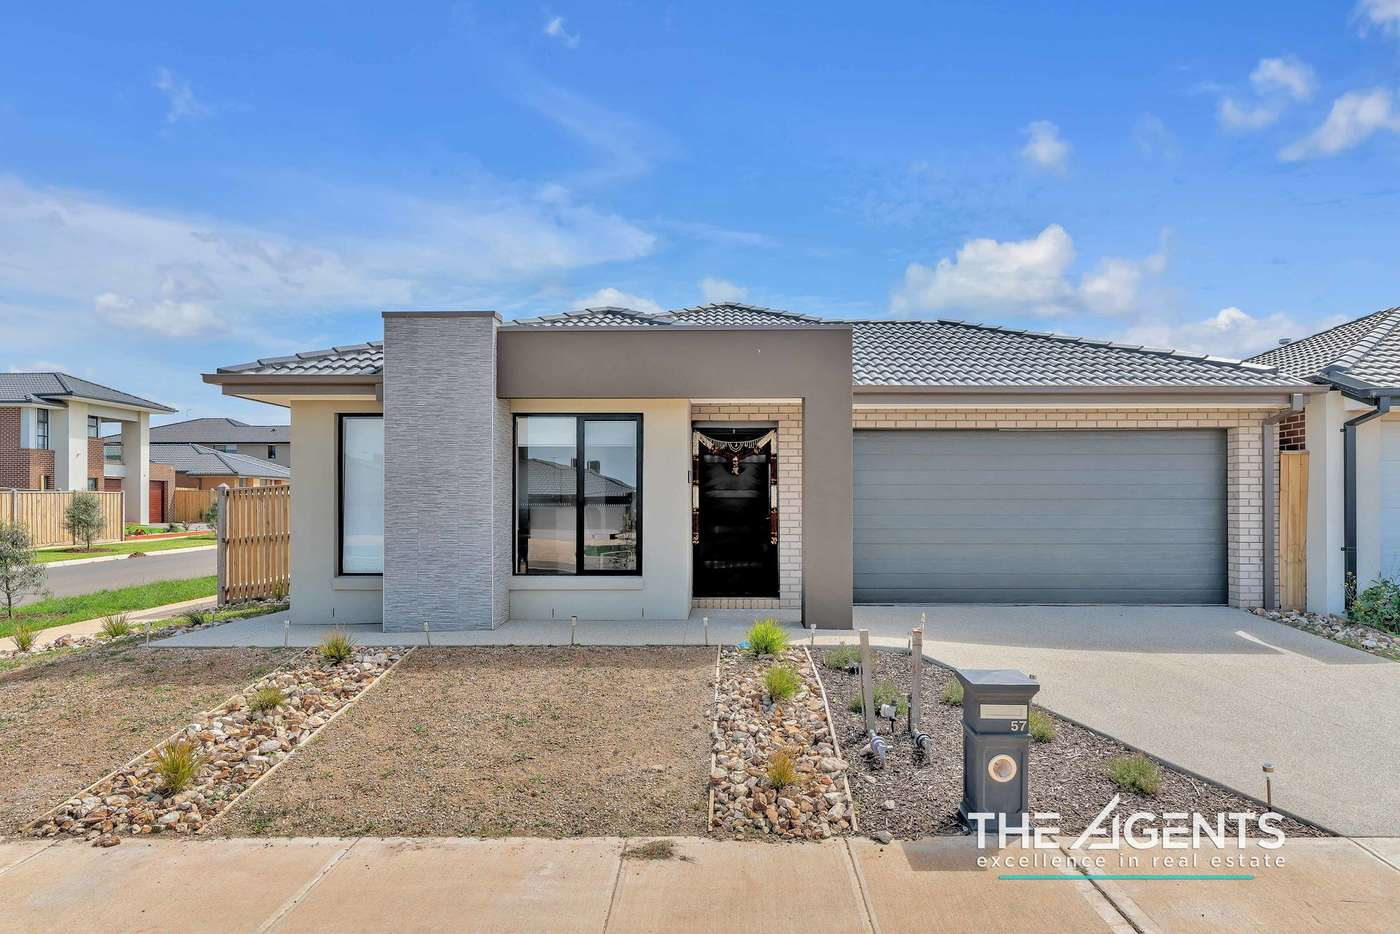 Main view of Homely house listing, 57 Brightvale Bvd, Wyndham Vale VIC 3024